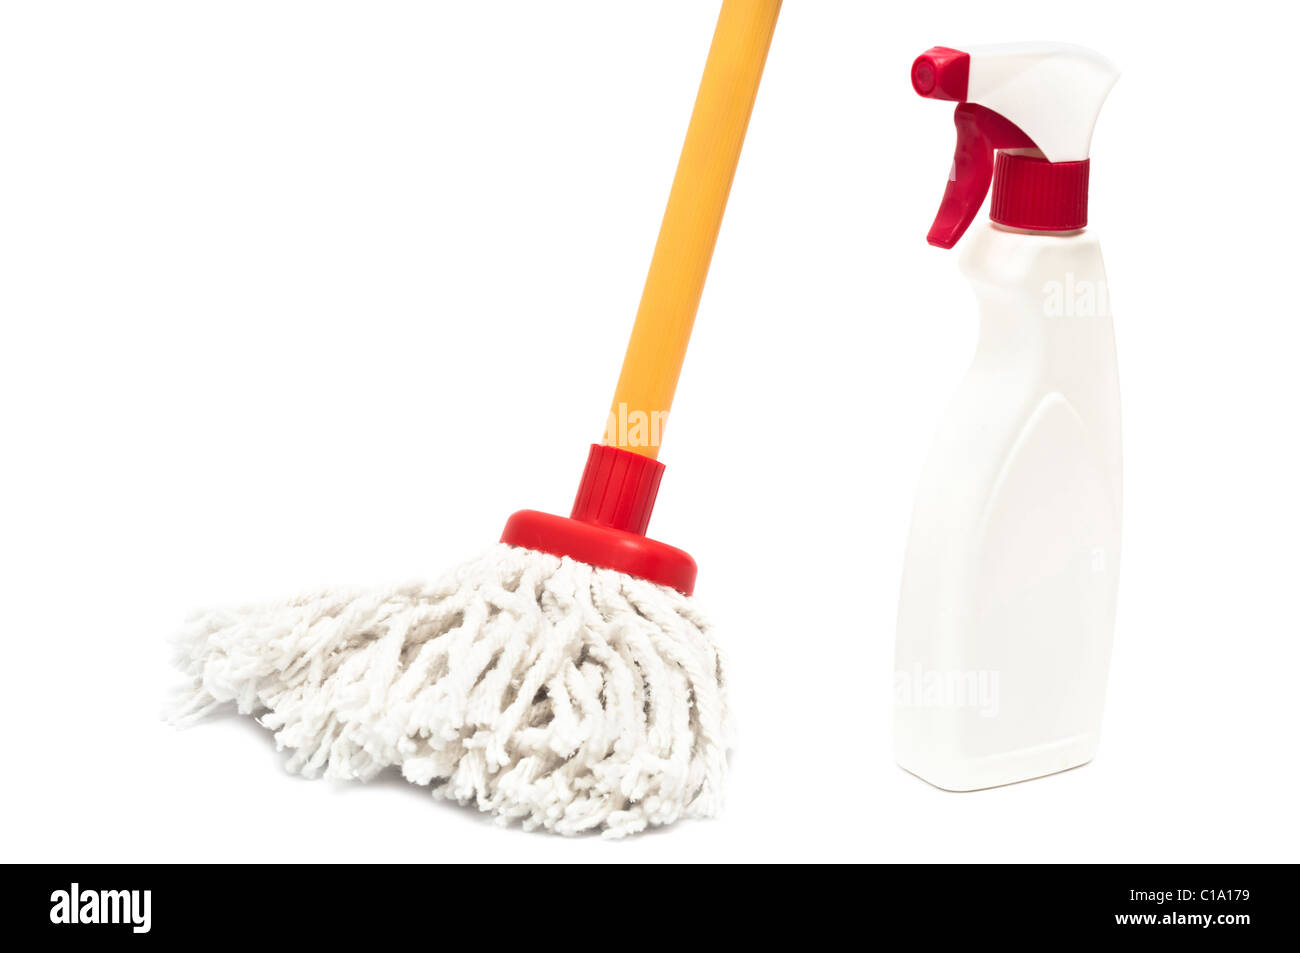 Close up of a mop and cleaner bottle isolated on white background - Stock Image